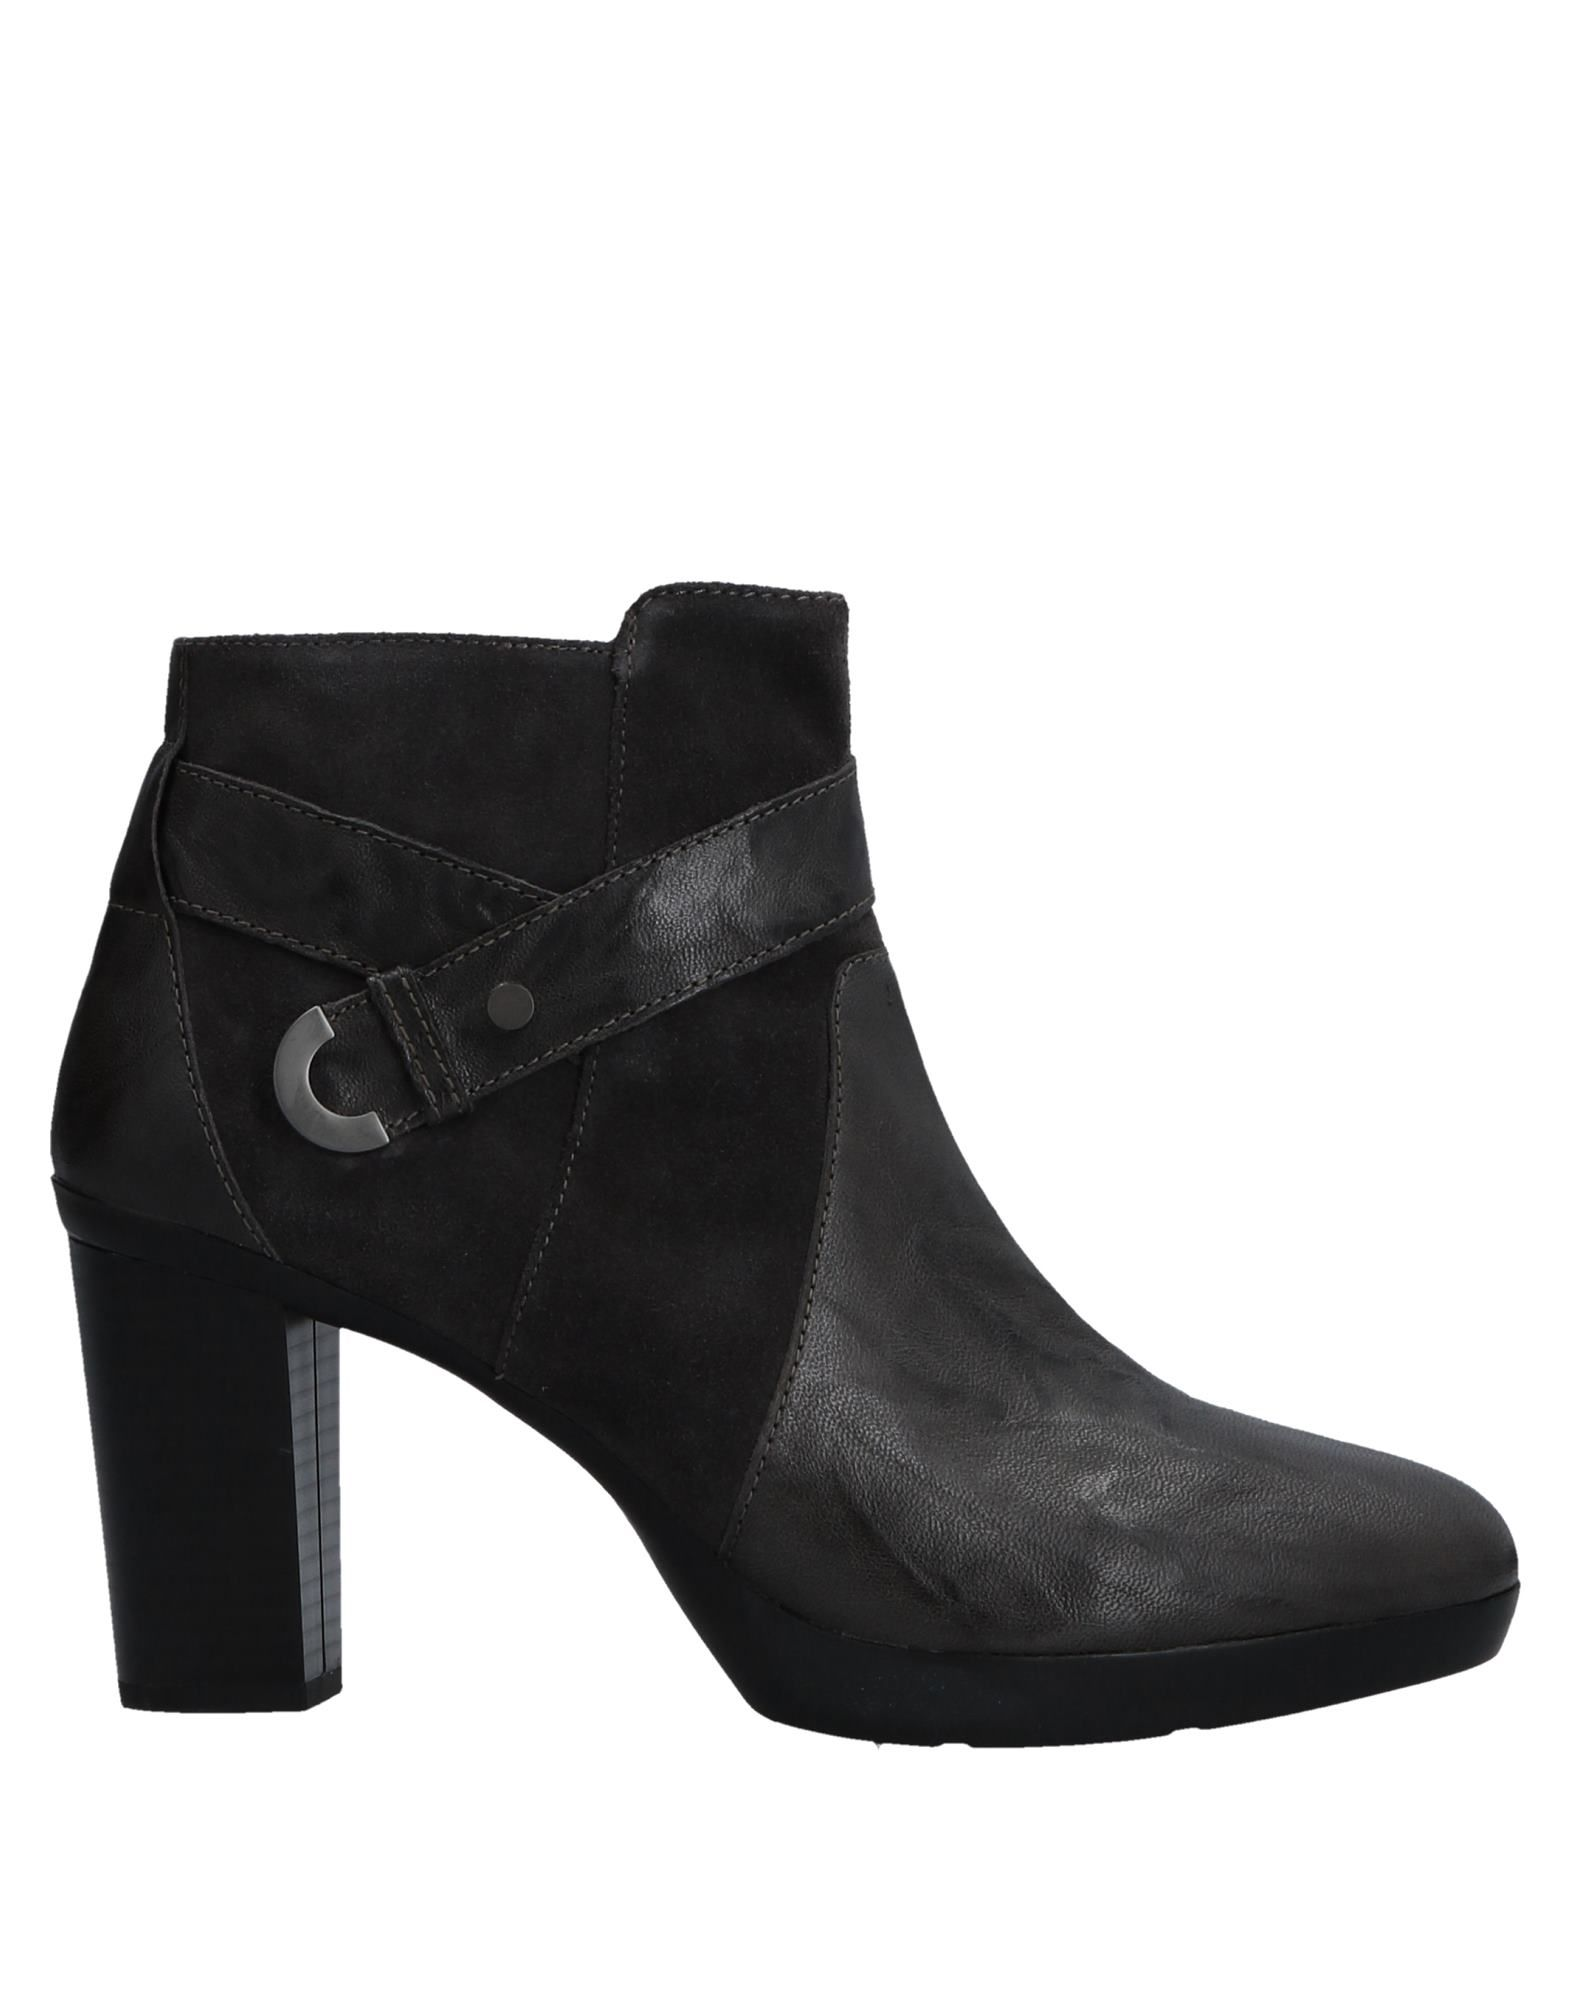 Geox Ankle Boot Boots - Women Geox Ankle Boots Boot online on  Australia - 11519785NN 72d436